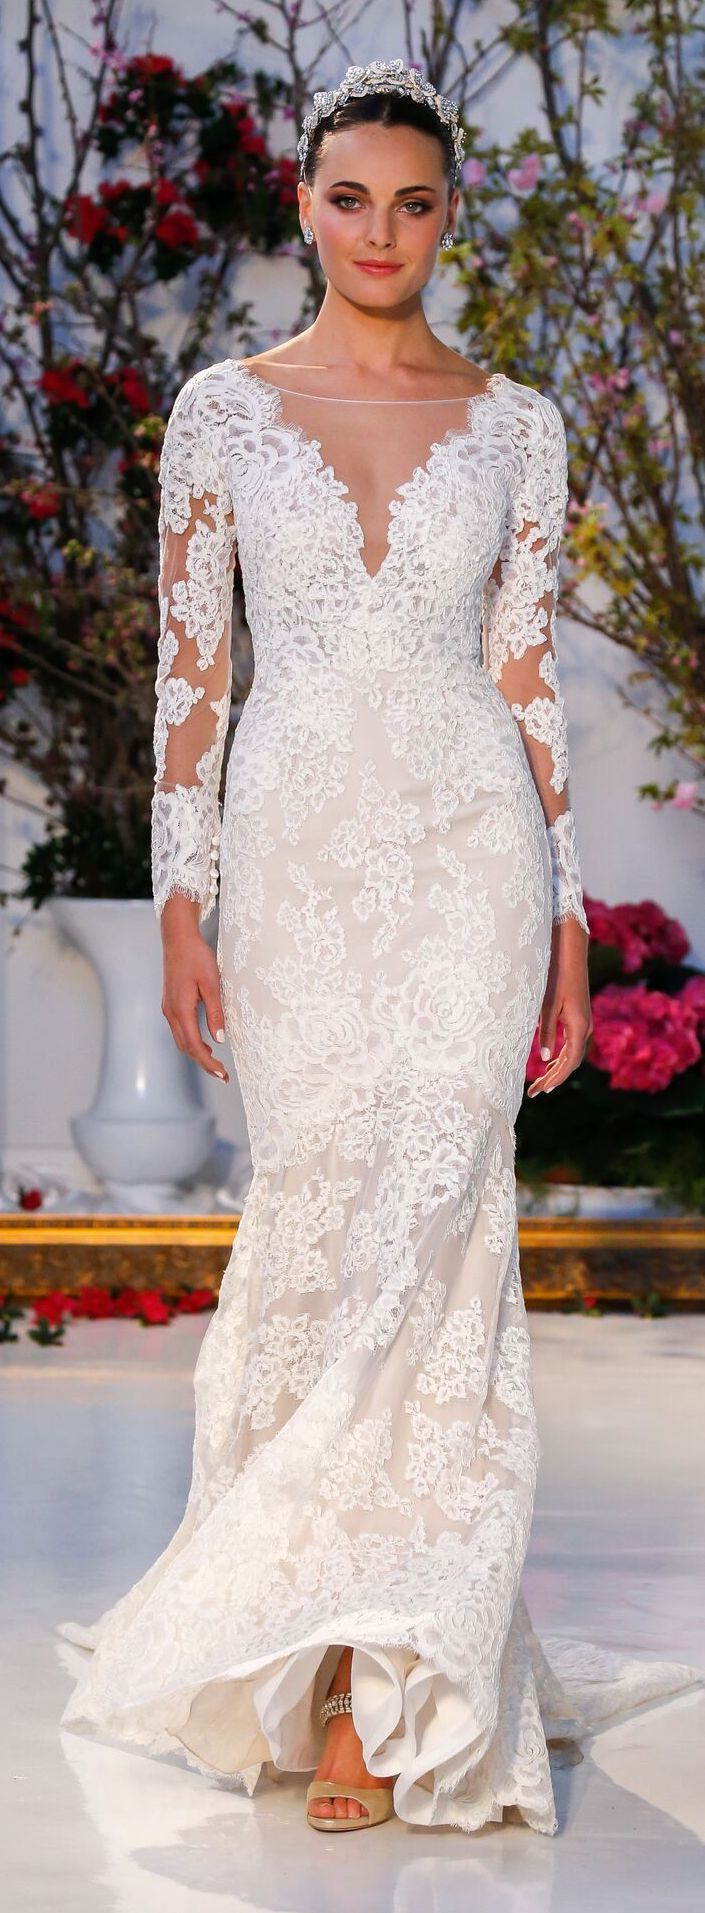 Wedding Dress by Anne Barge Spring 2017   Long sleeve lace illusion neckline fitted bridal gown